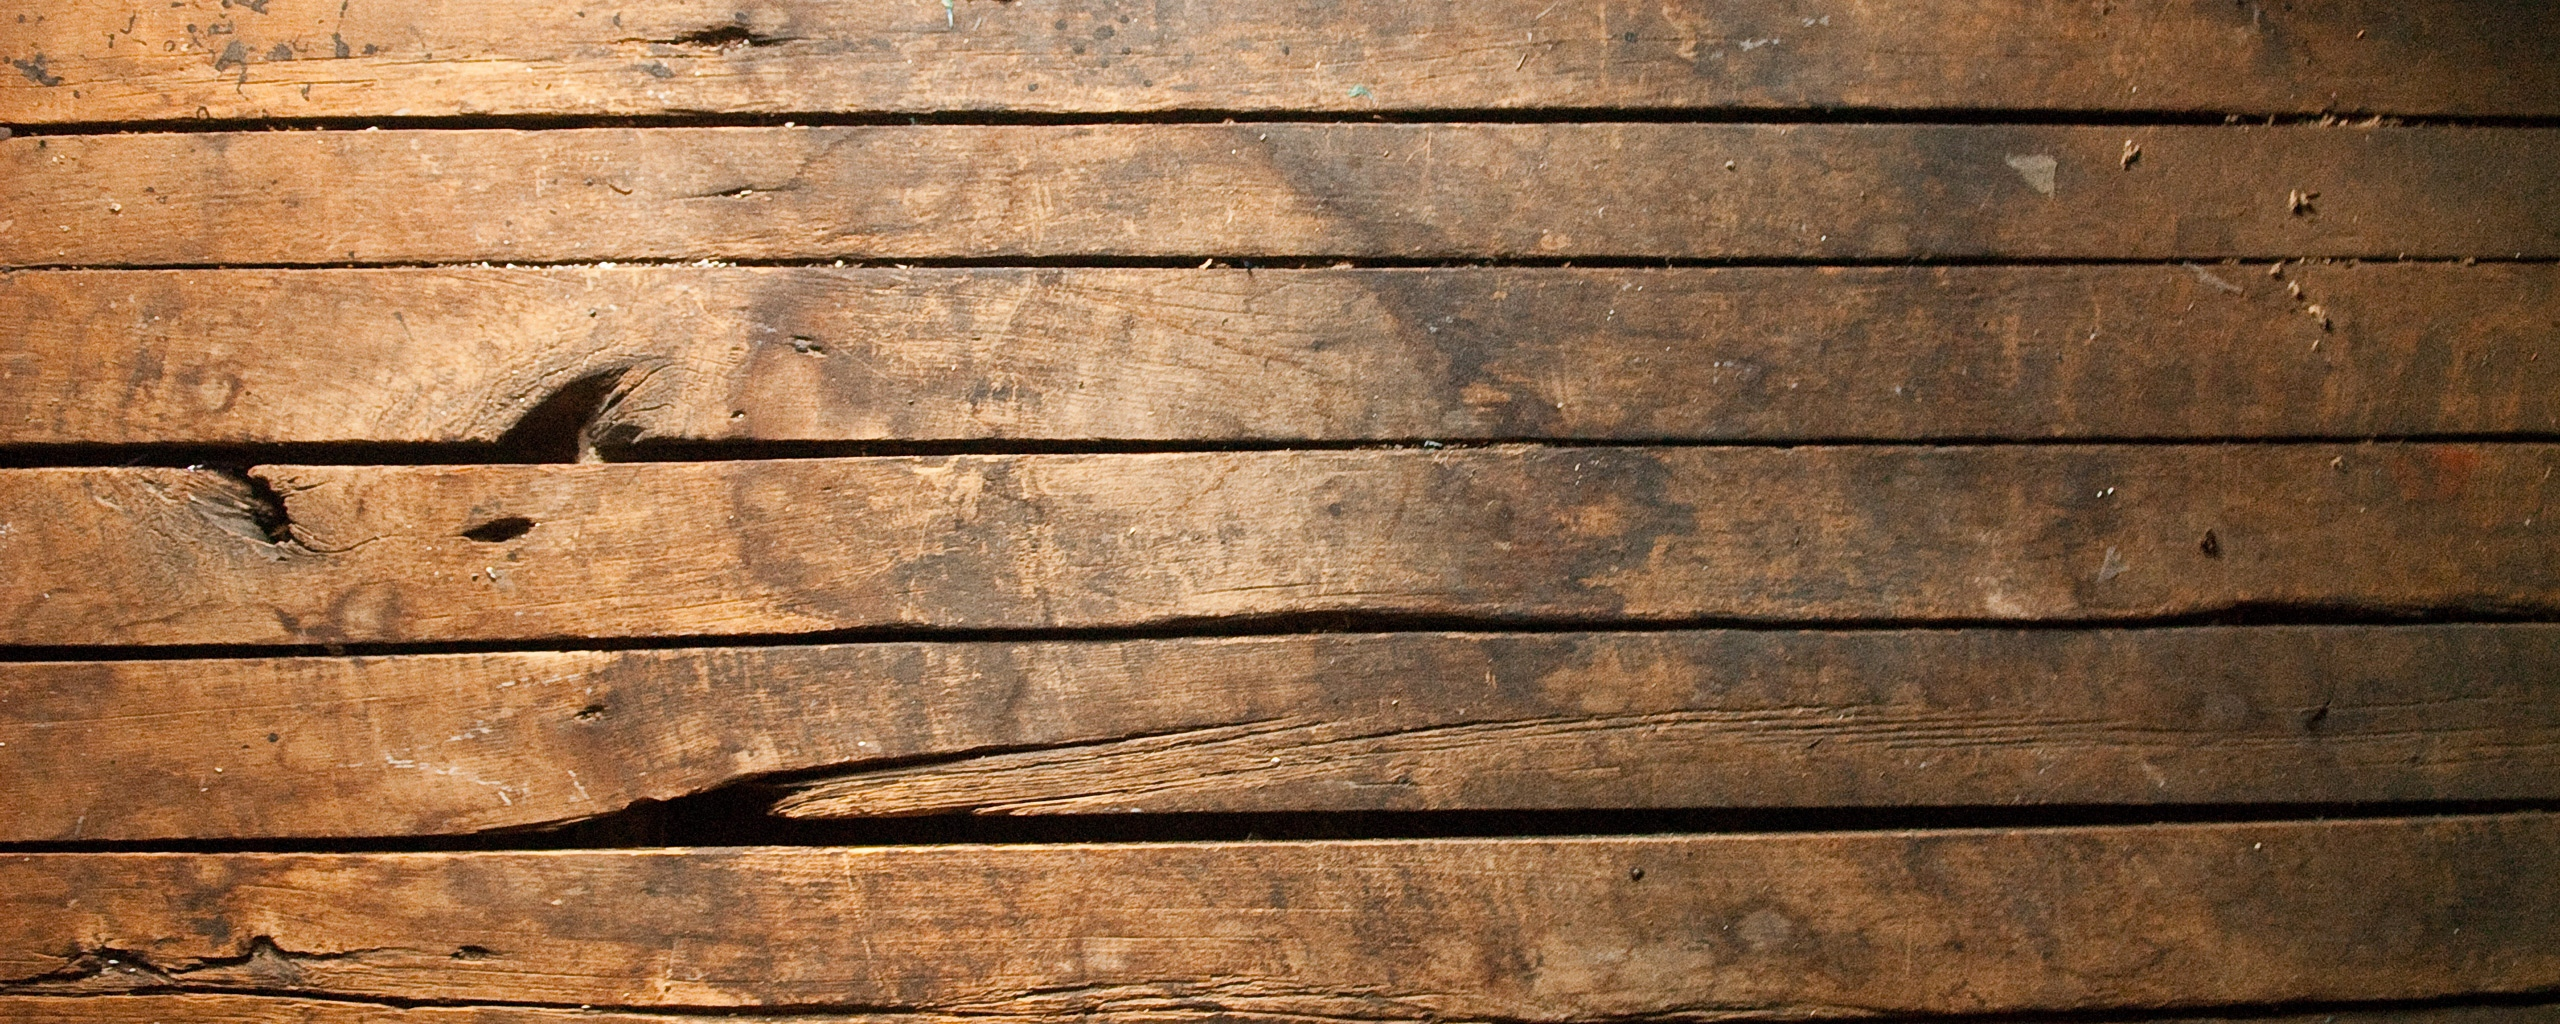 Wooden Planks Vertical Wallpaper Background Dual Monitor Resolution 2560x1024